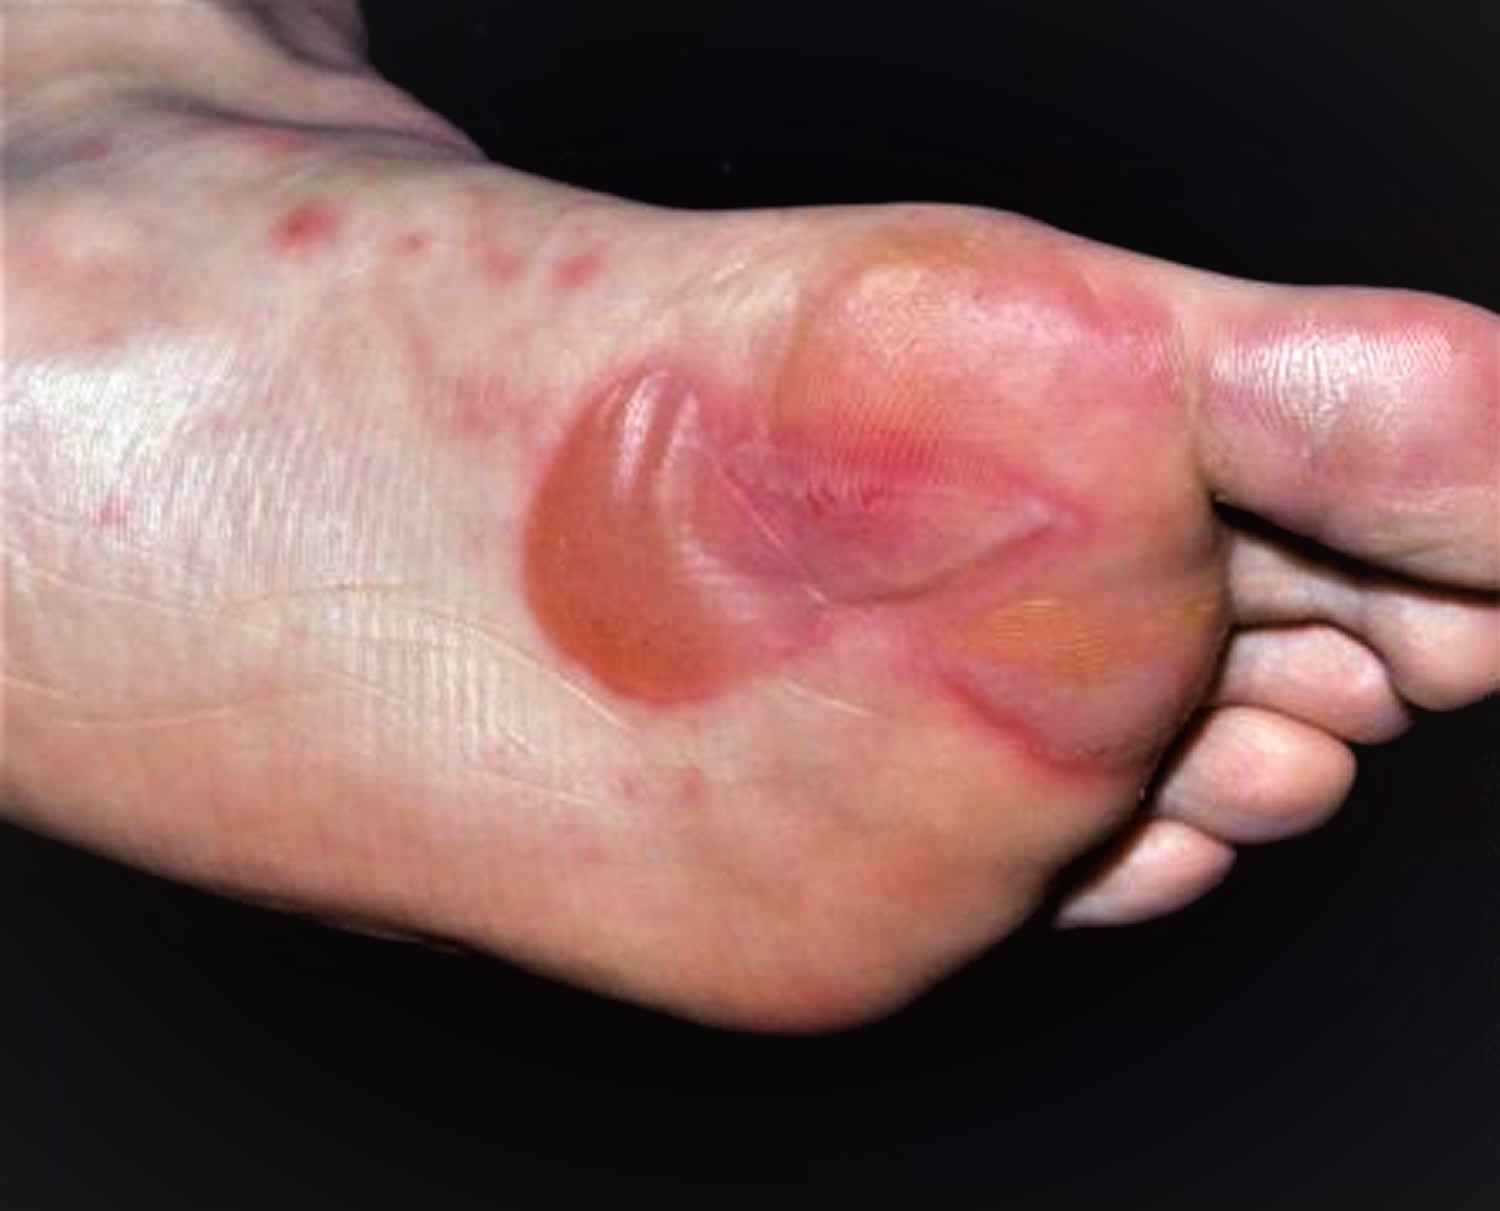 Blister on Foot - Causes and How To Treat Foot Blisters